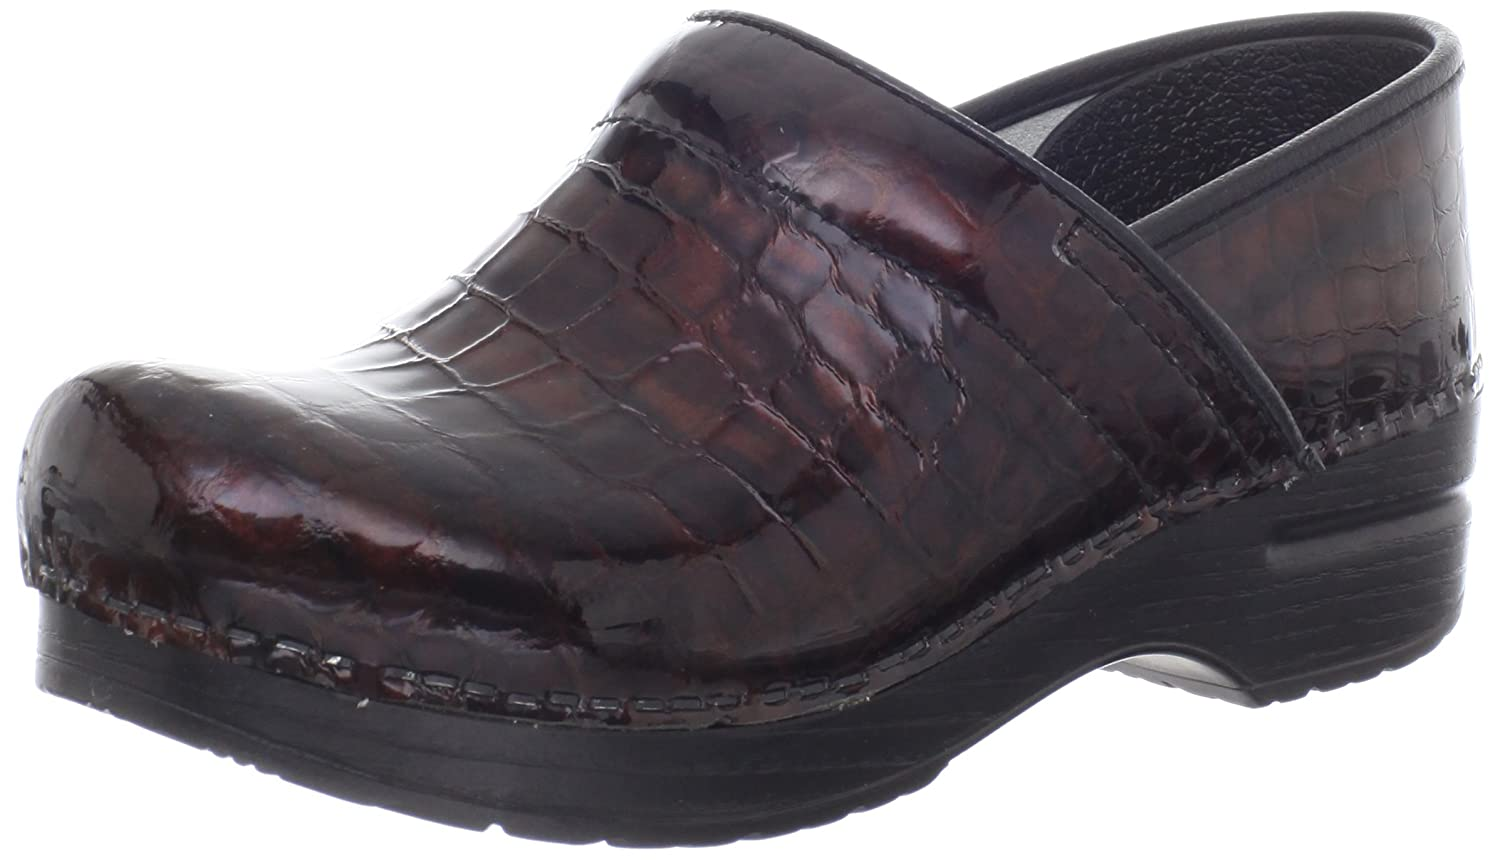 Dansko Women's Professional Brown Croc Clog